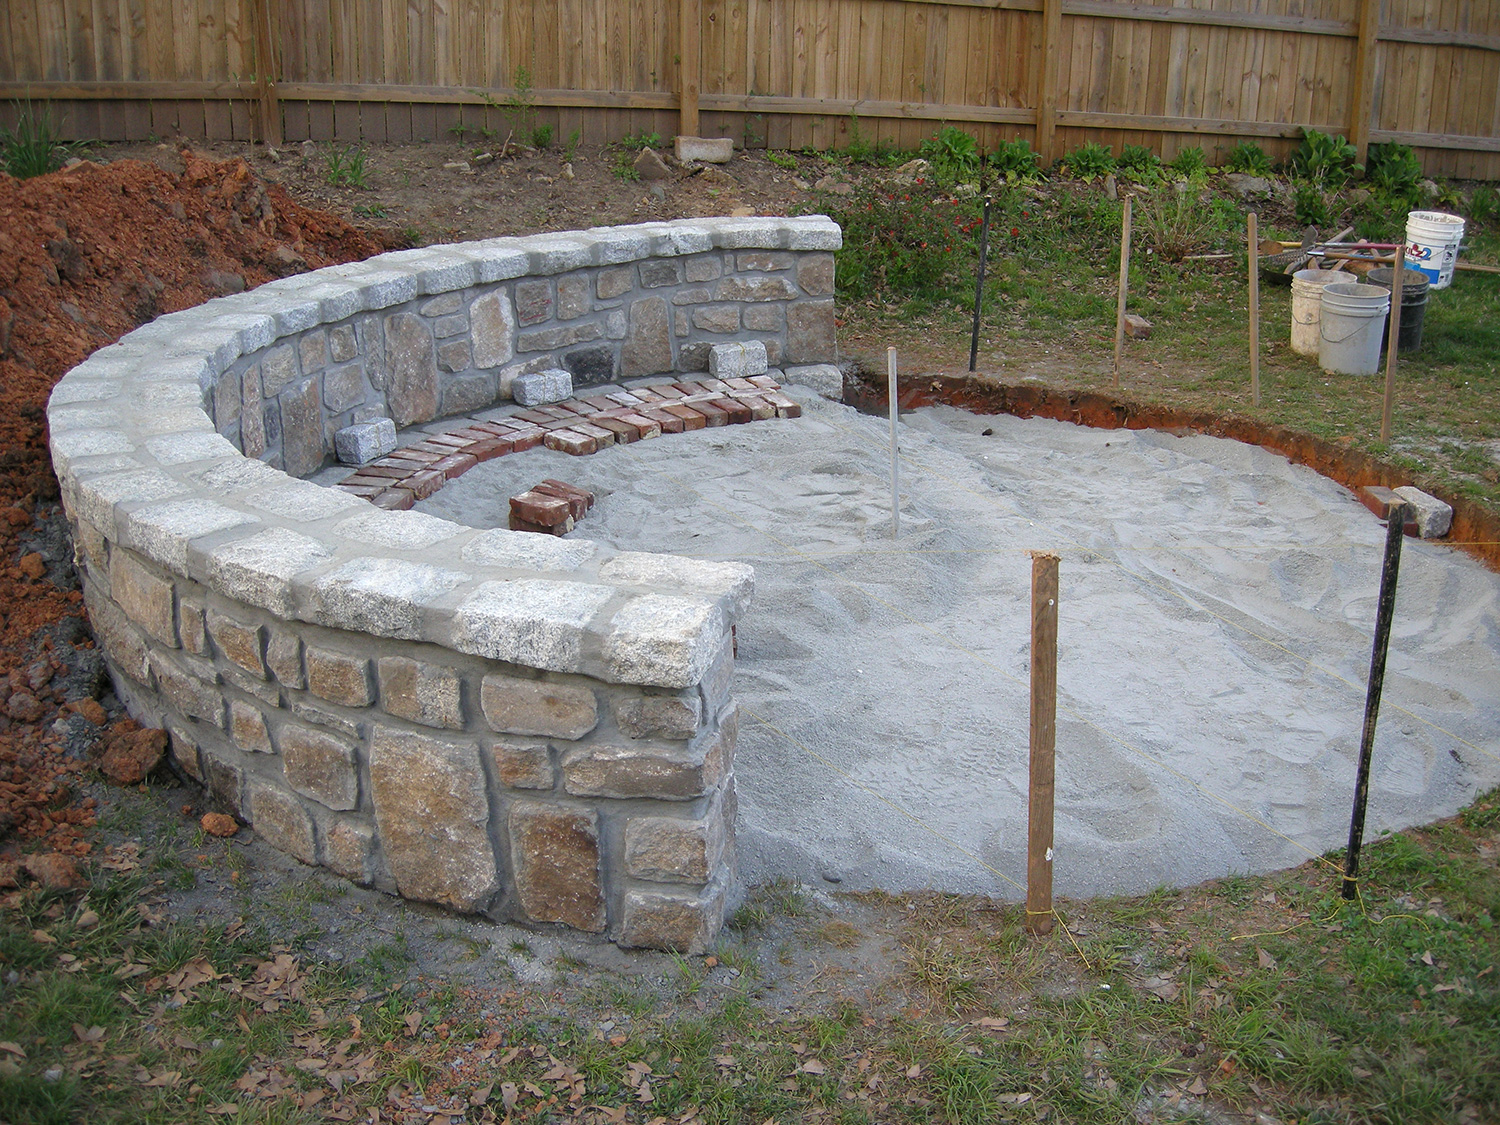 A Ton Of Granite Dust Filled Up The Hole To Create The Foundation For The  Patio. Lots Of Strings And Levels Were Used To Make Sure Everything Was  Nice And ...